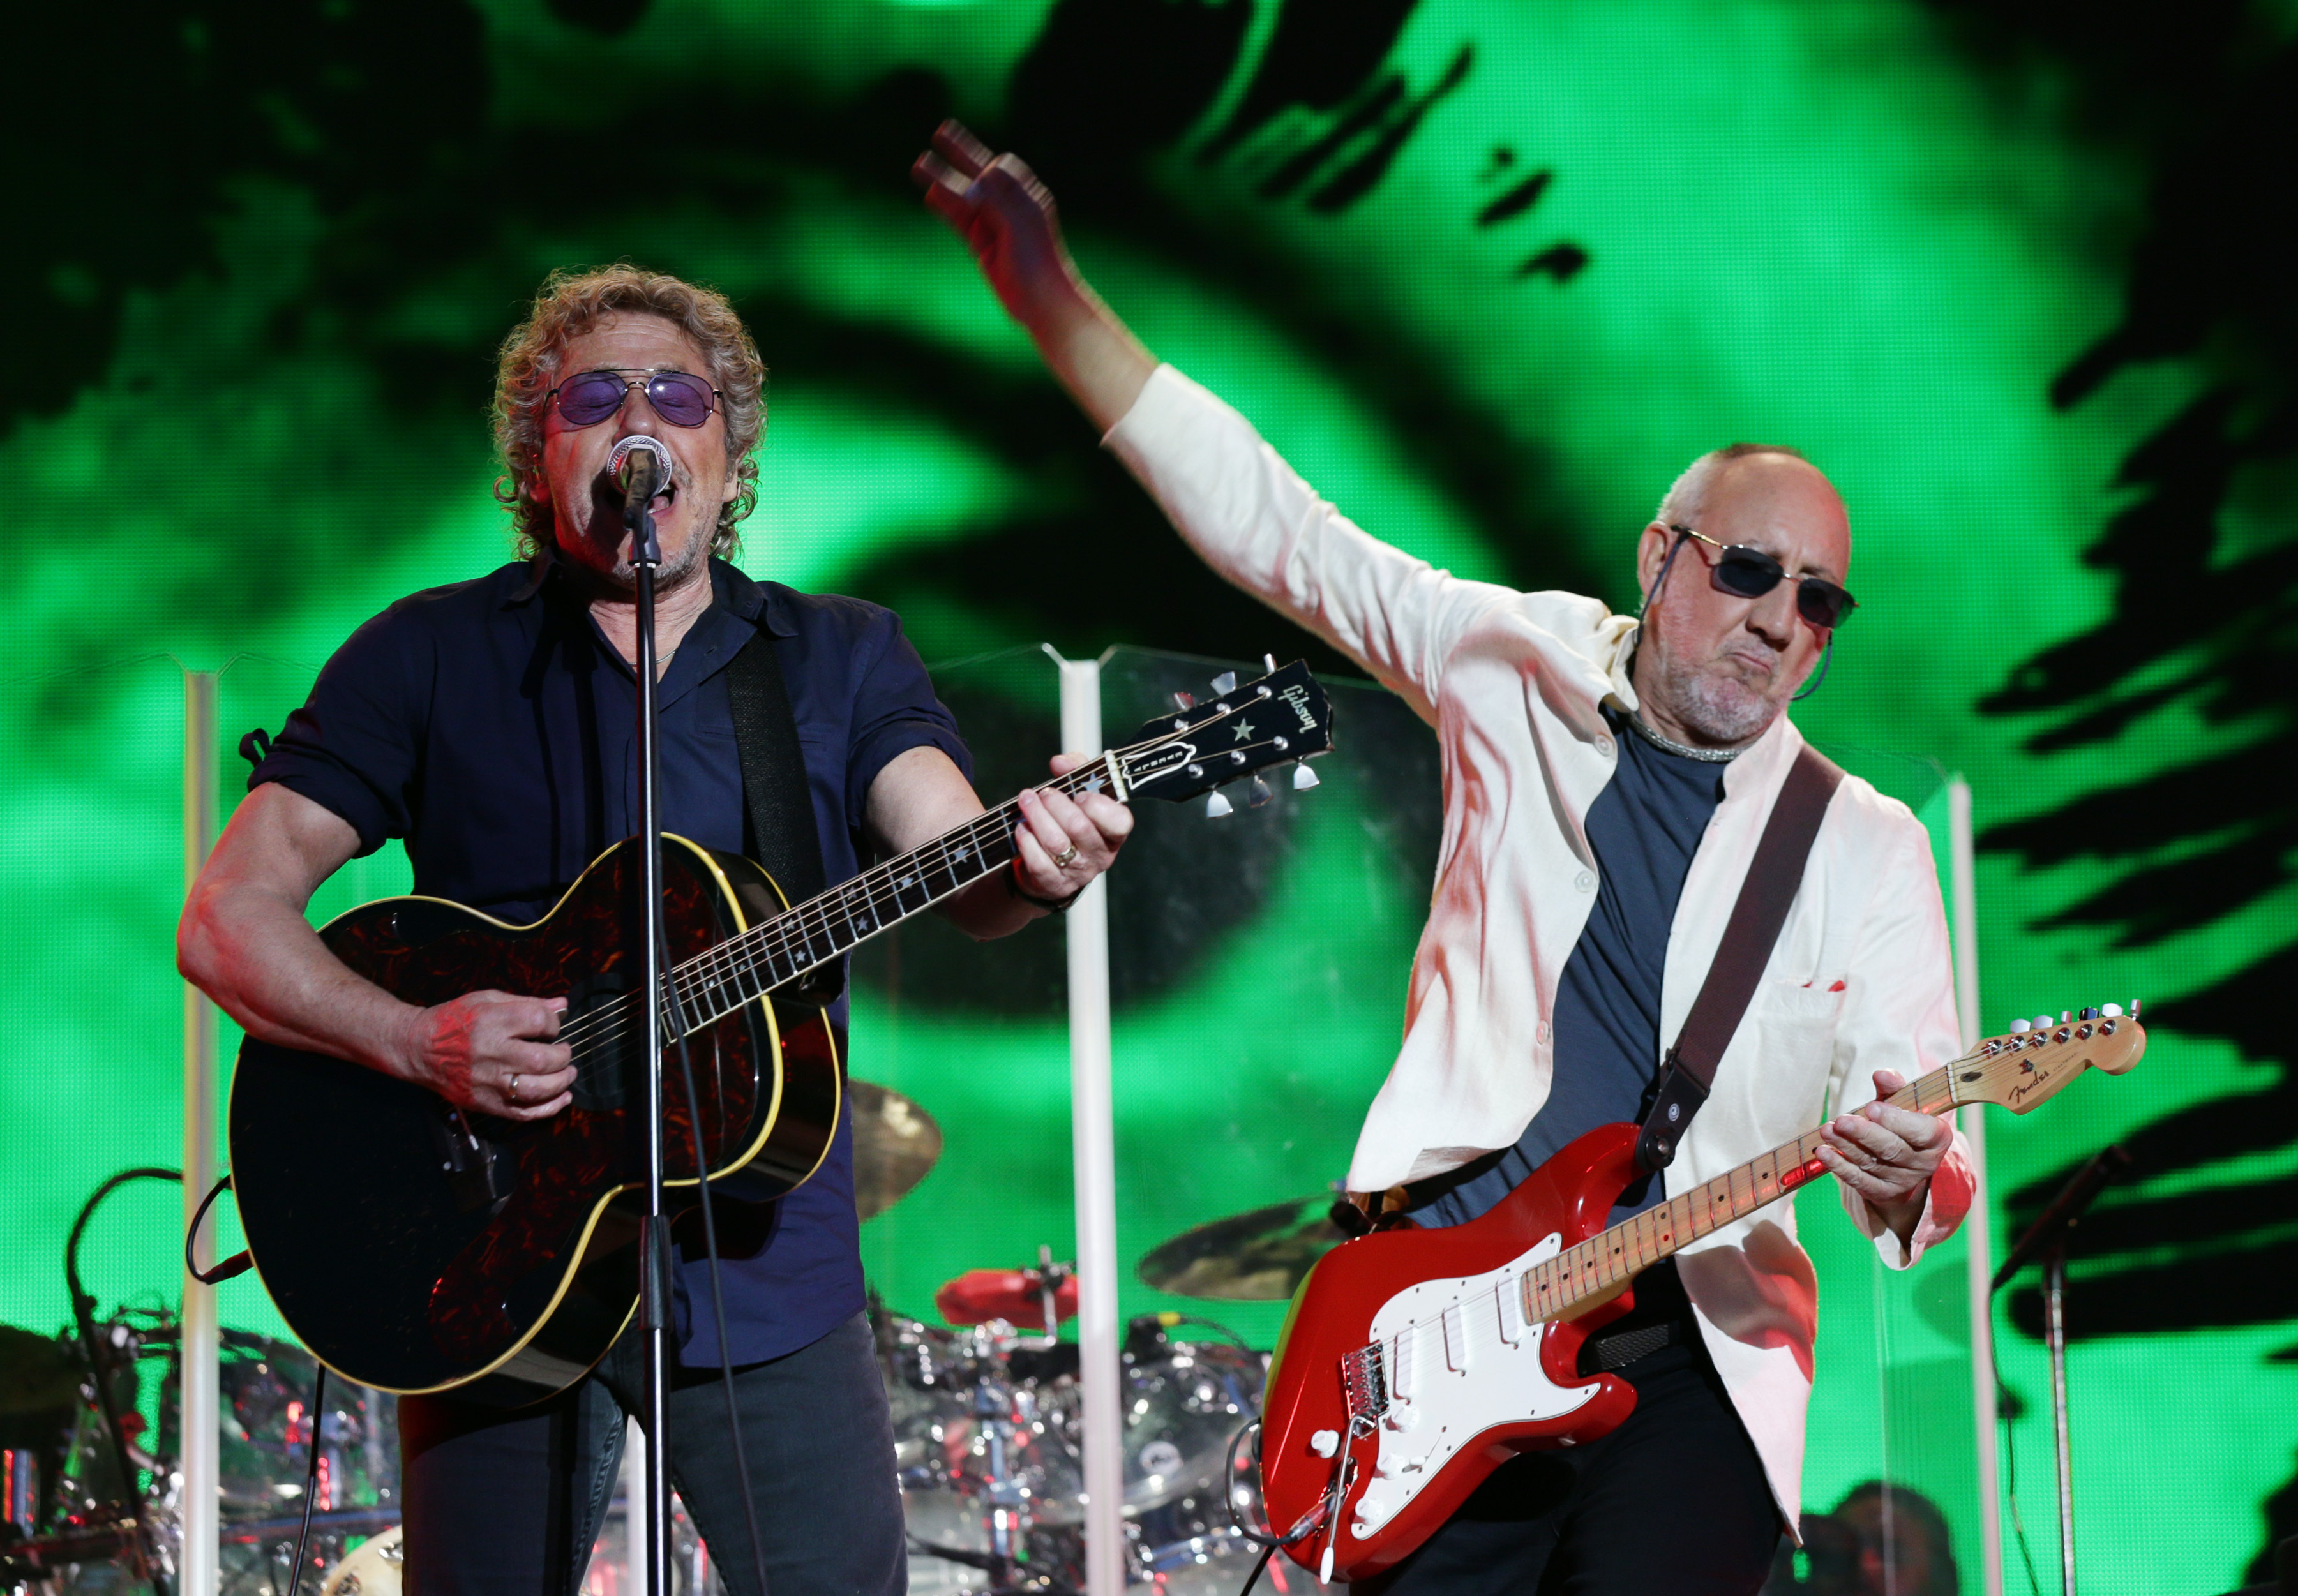 Glastonbury Festival 2015 - Day 3. Roger Daltrey and Pete Townshend of The Who performing on The Pyramid Stage during the Gla